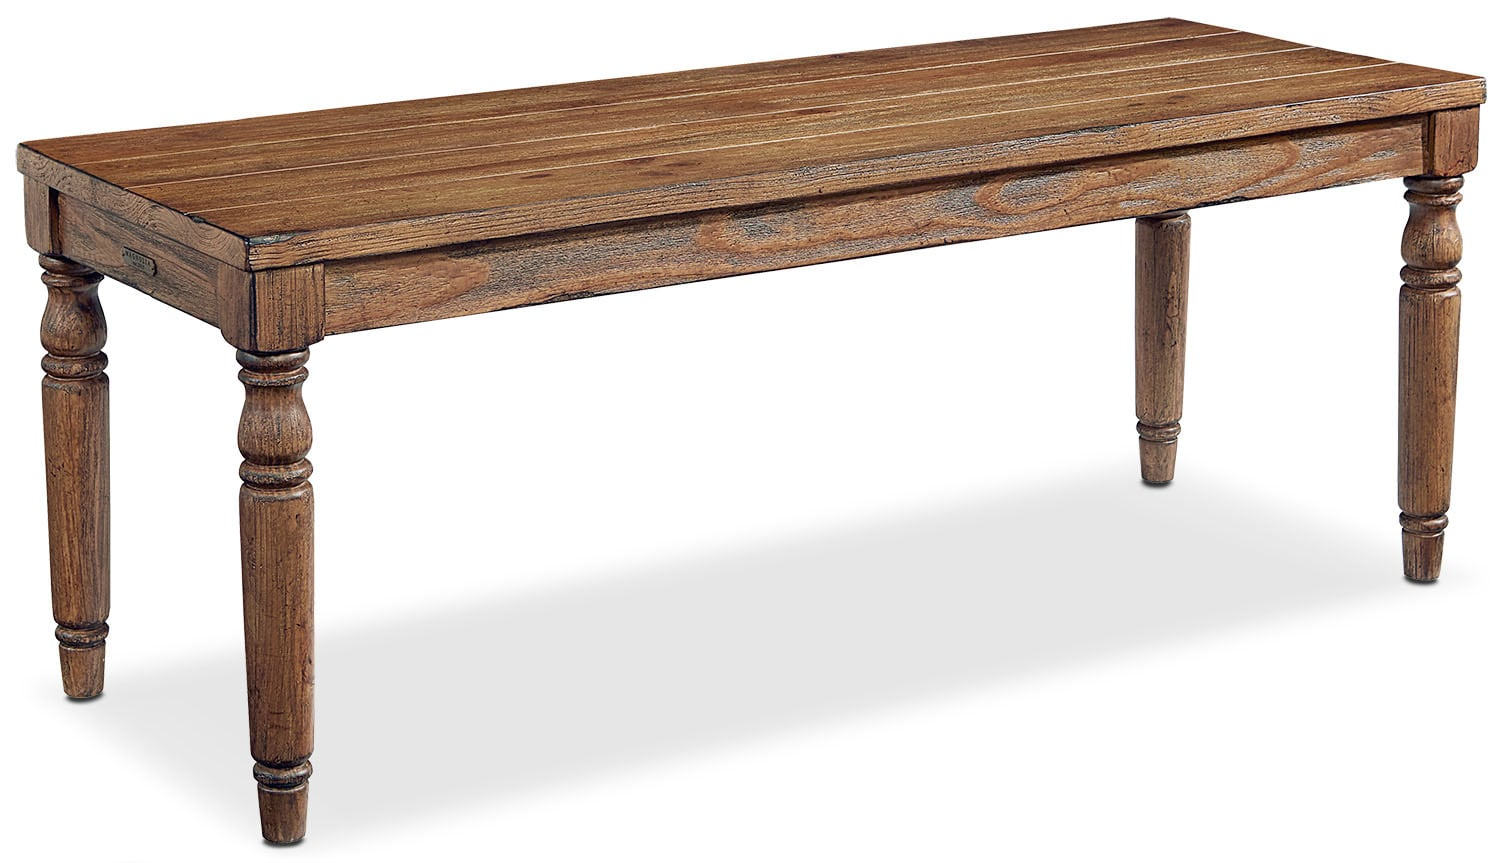 Primitive Taper Turned Bench - Bench